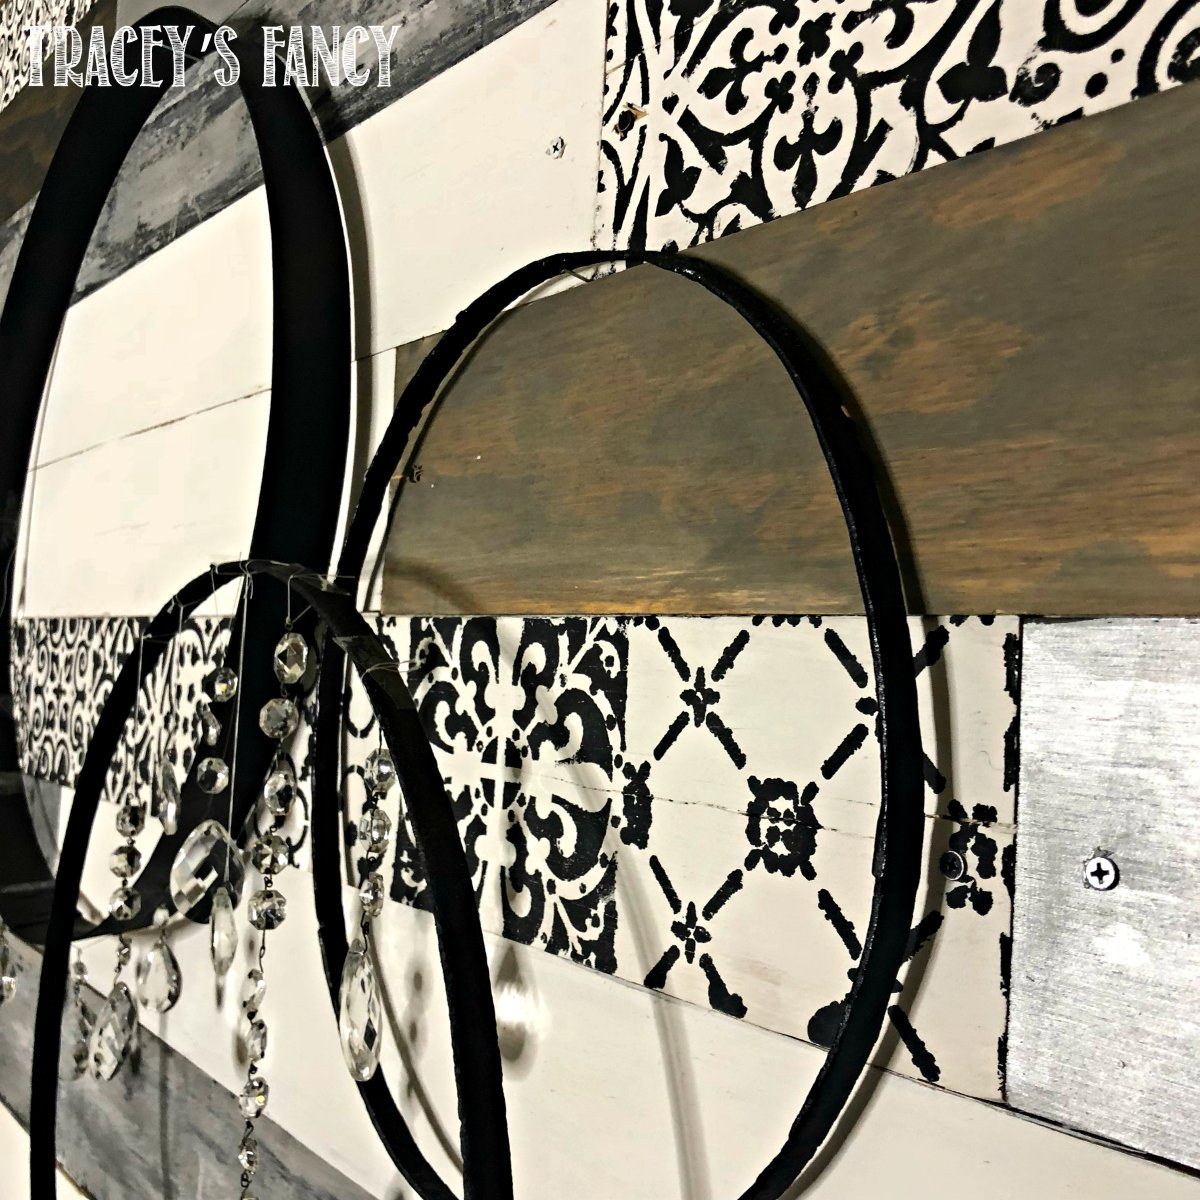 Metallic Wood Plank Wall Tracey's Fancy 3